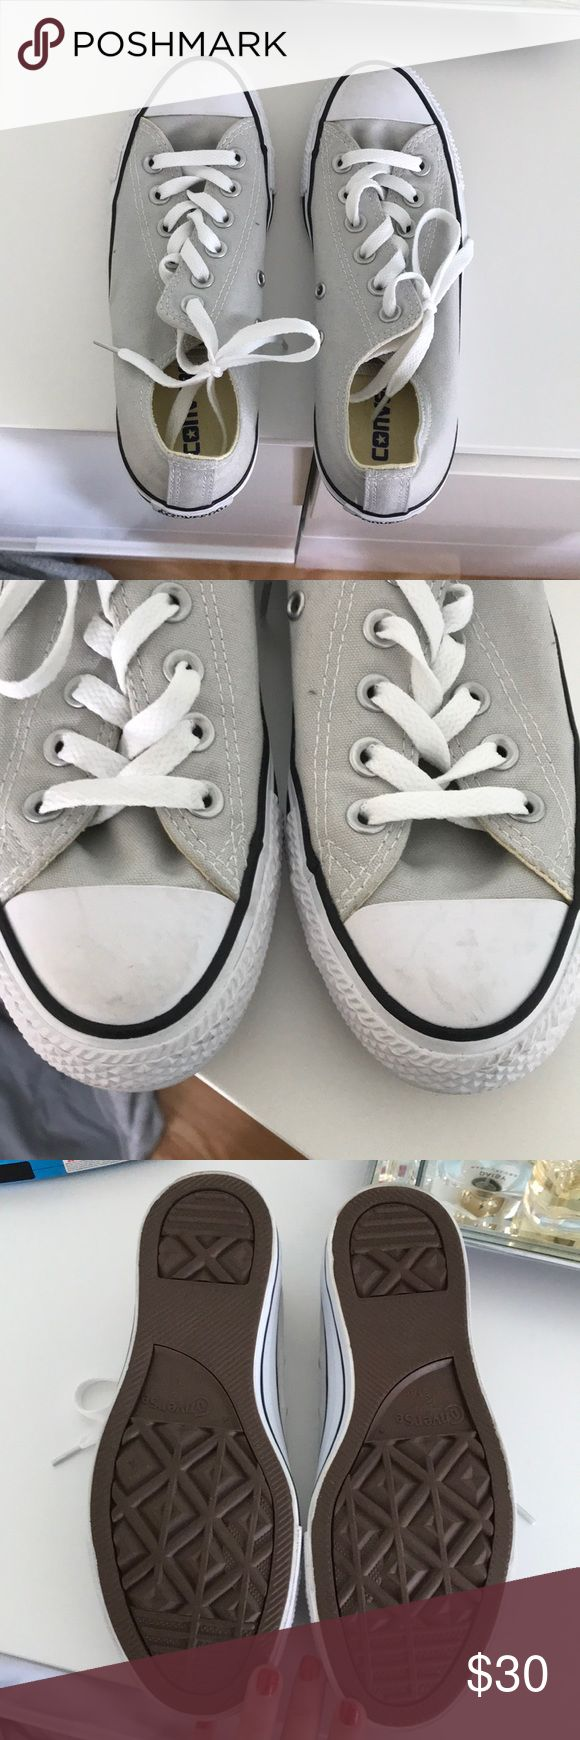 SALE Women's Converse! Light grey, gently used with minimal scuffing on the front, great condition! Unusual color for converse but works well with every outfit! Converse Shoes Sneakers